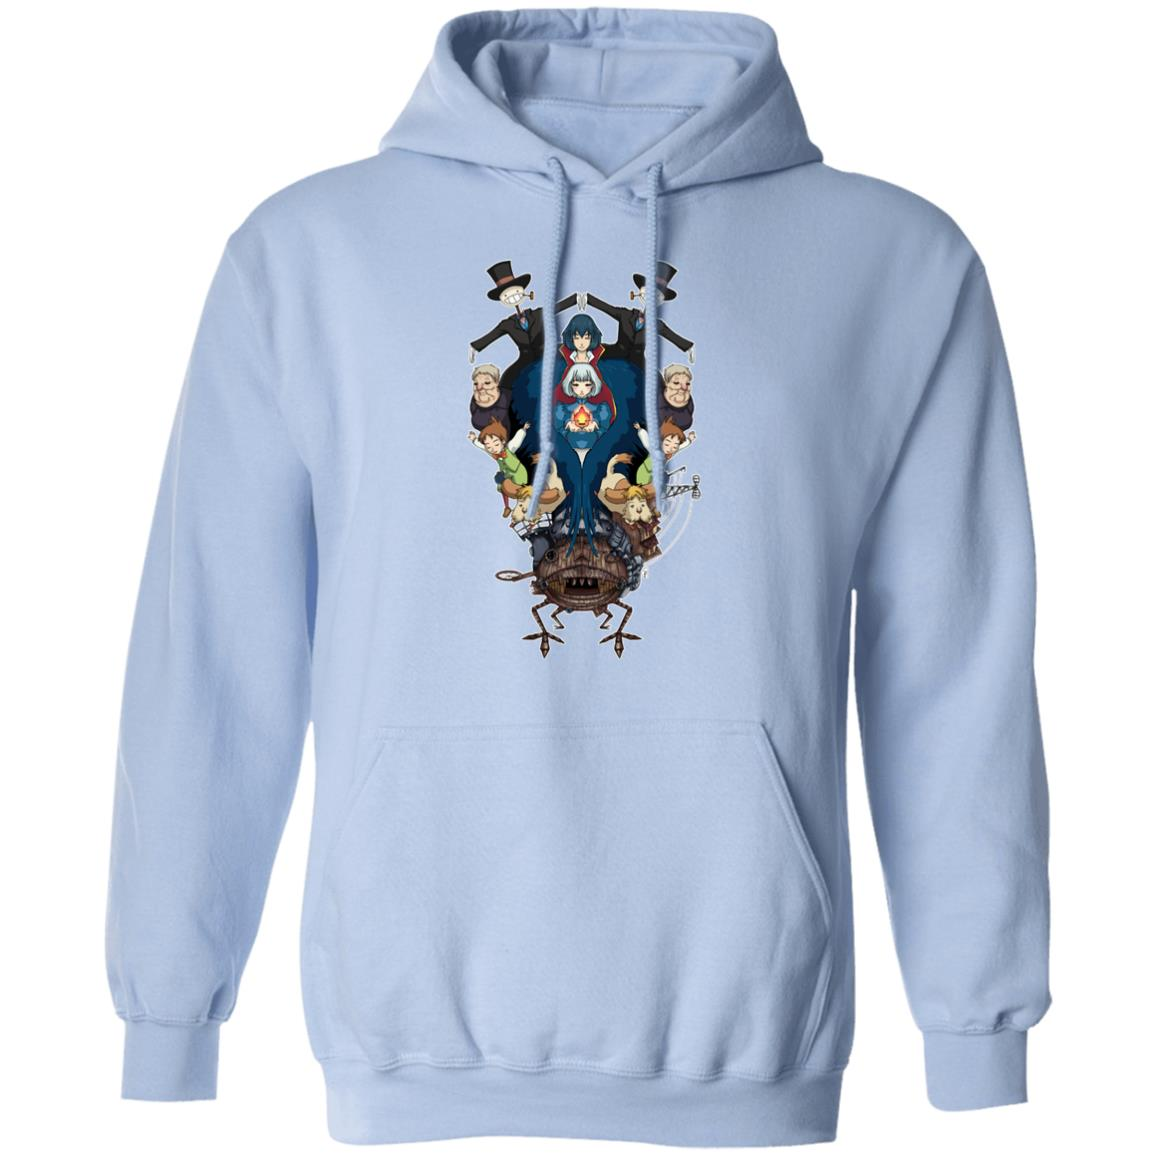 Howl's Moving Castle Characters Mirror Hoodie